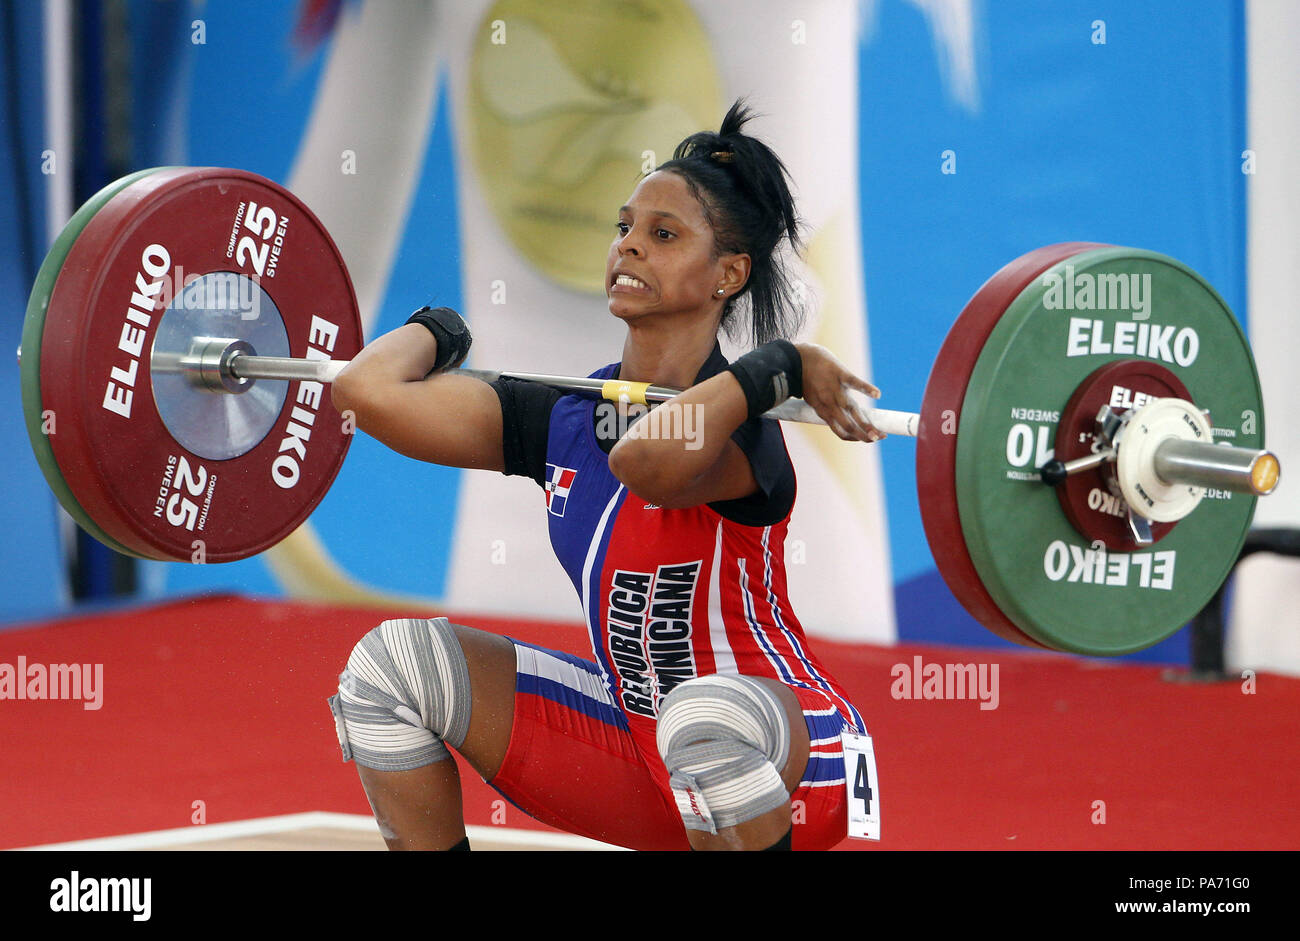 Barranquilla, Colombia. 20th July, 2018. Dominican Santa Dolorita Cotes competes at 48kg women weighlifting during the Central American and Caribbean Games 2018, in Barranquilla, Colombia, 20 July 2018. Segura won the gold medal in 97kg. Credit: Luis Eduardo Noriega A./EFE/Alamy Live News - Stock Image